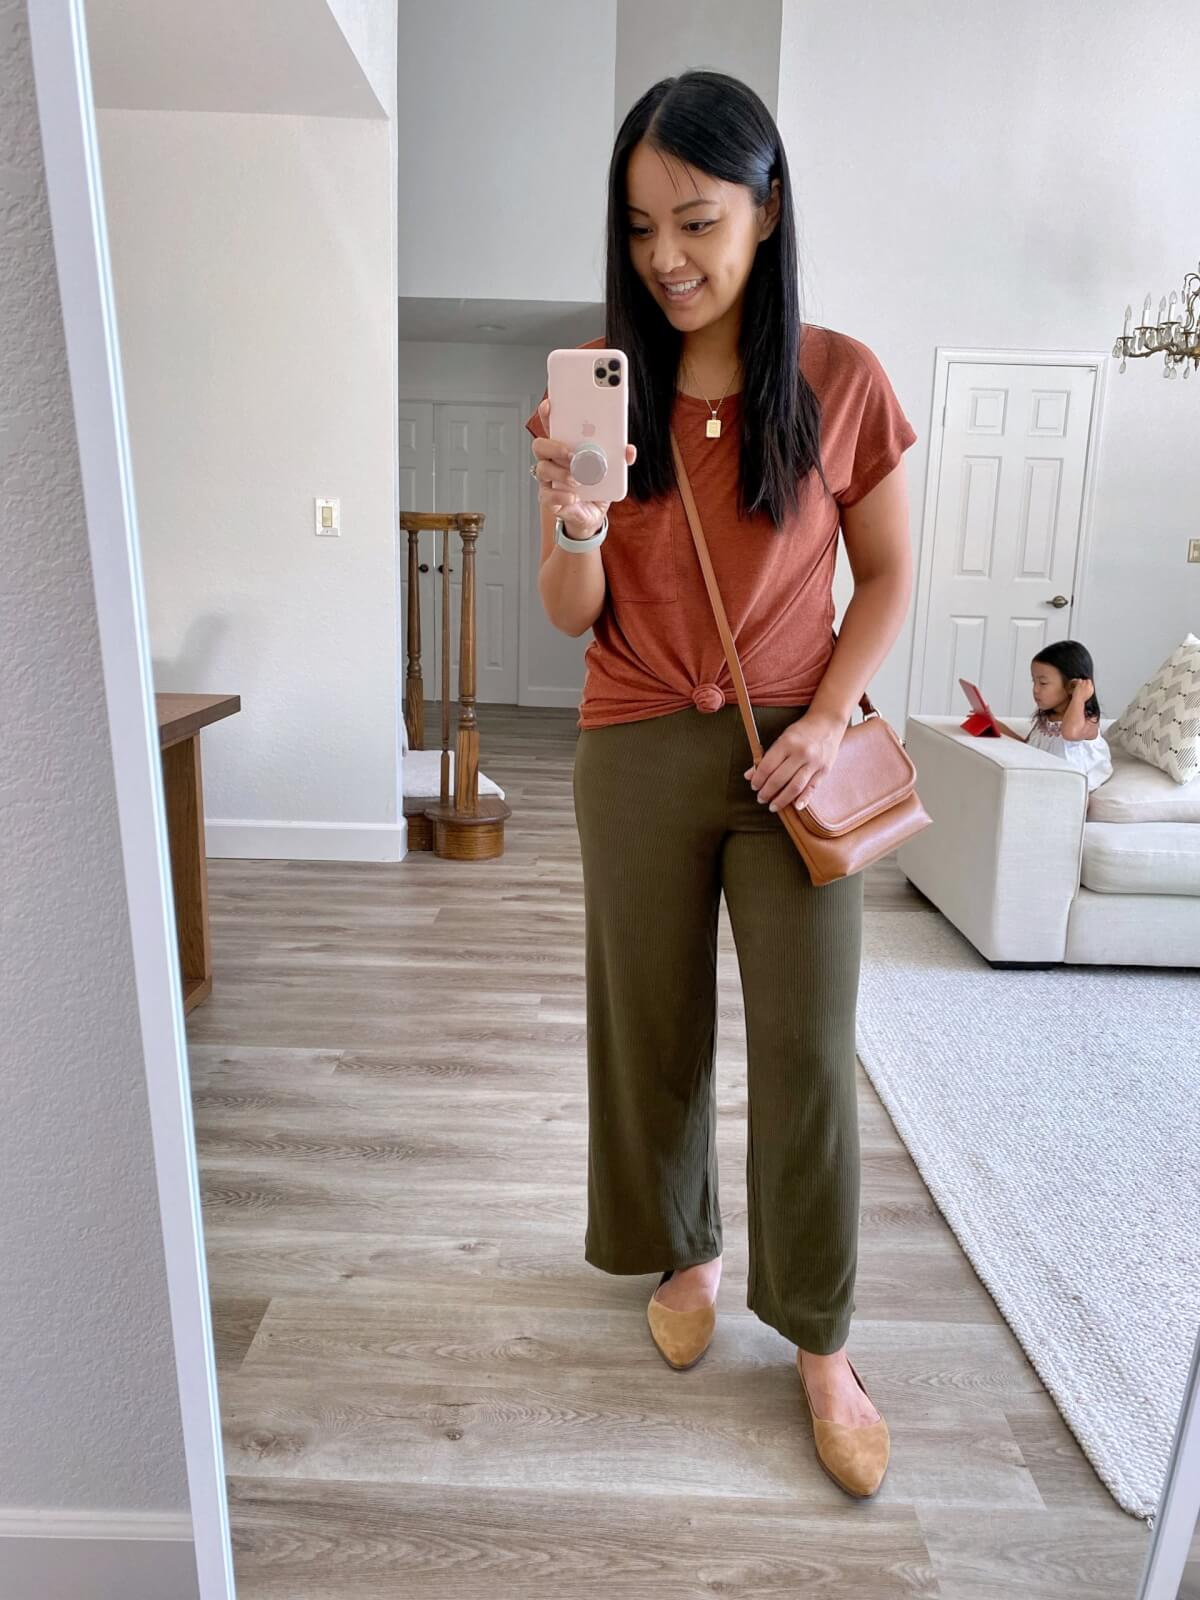 rust tee + olive wide leg pants + tan flats for early warm fall outfit